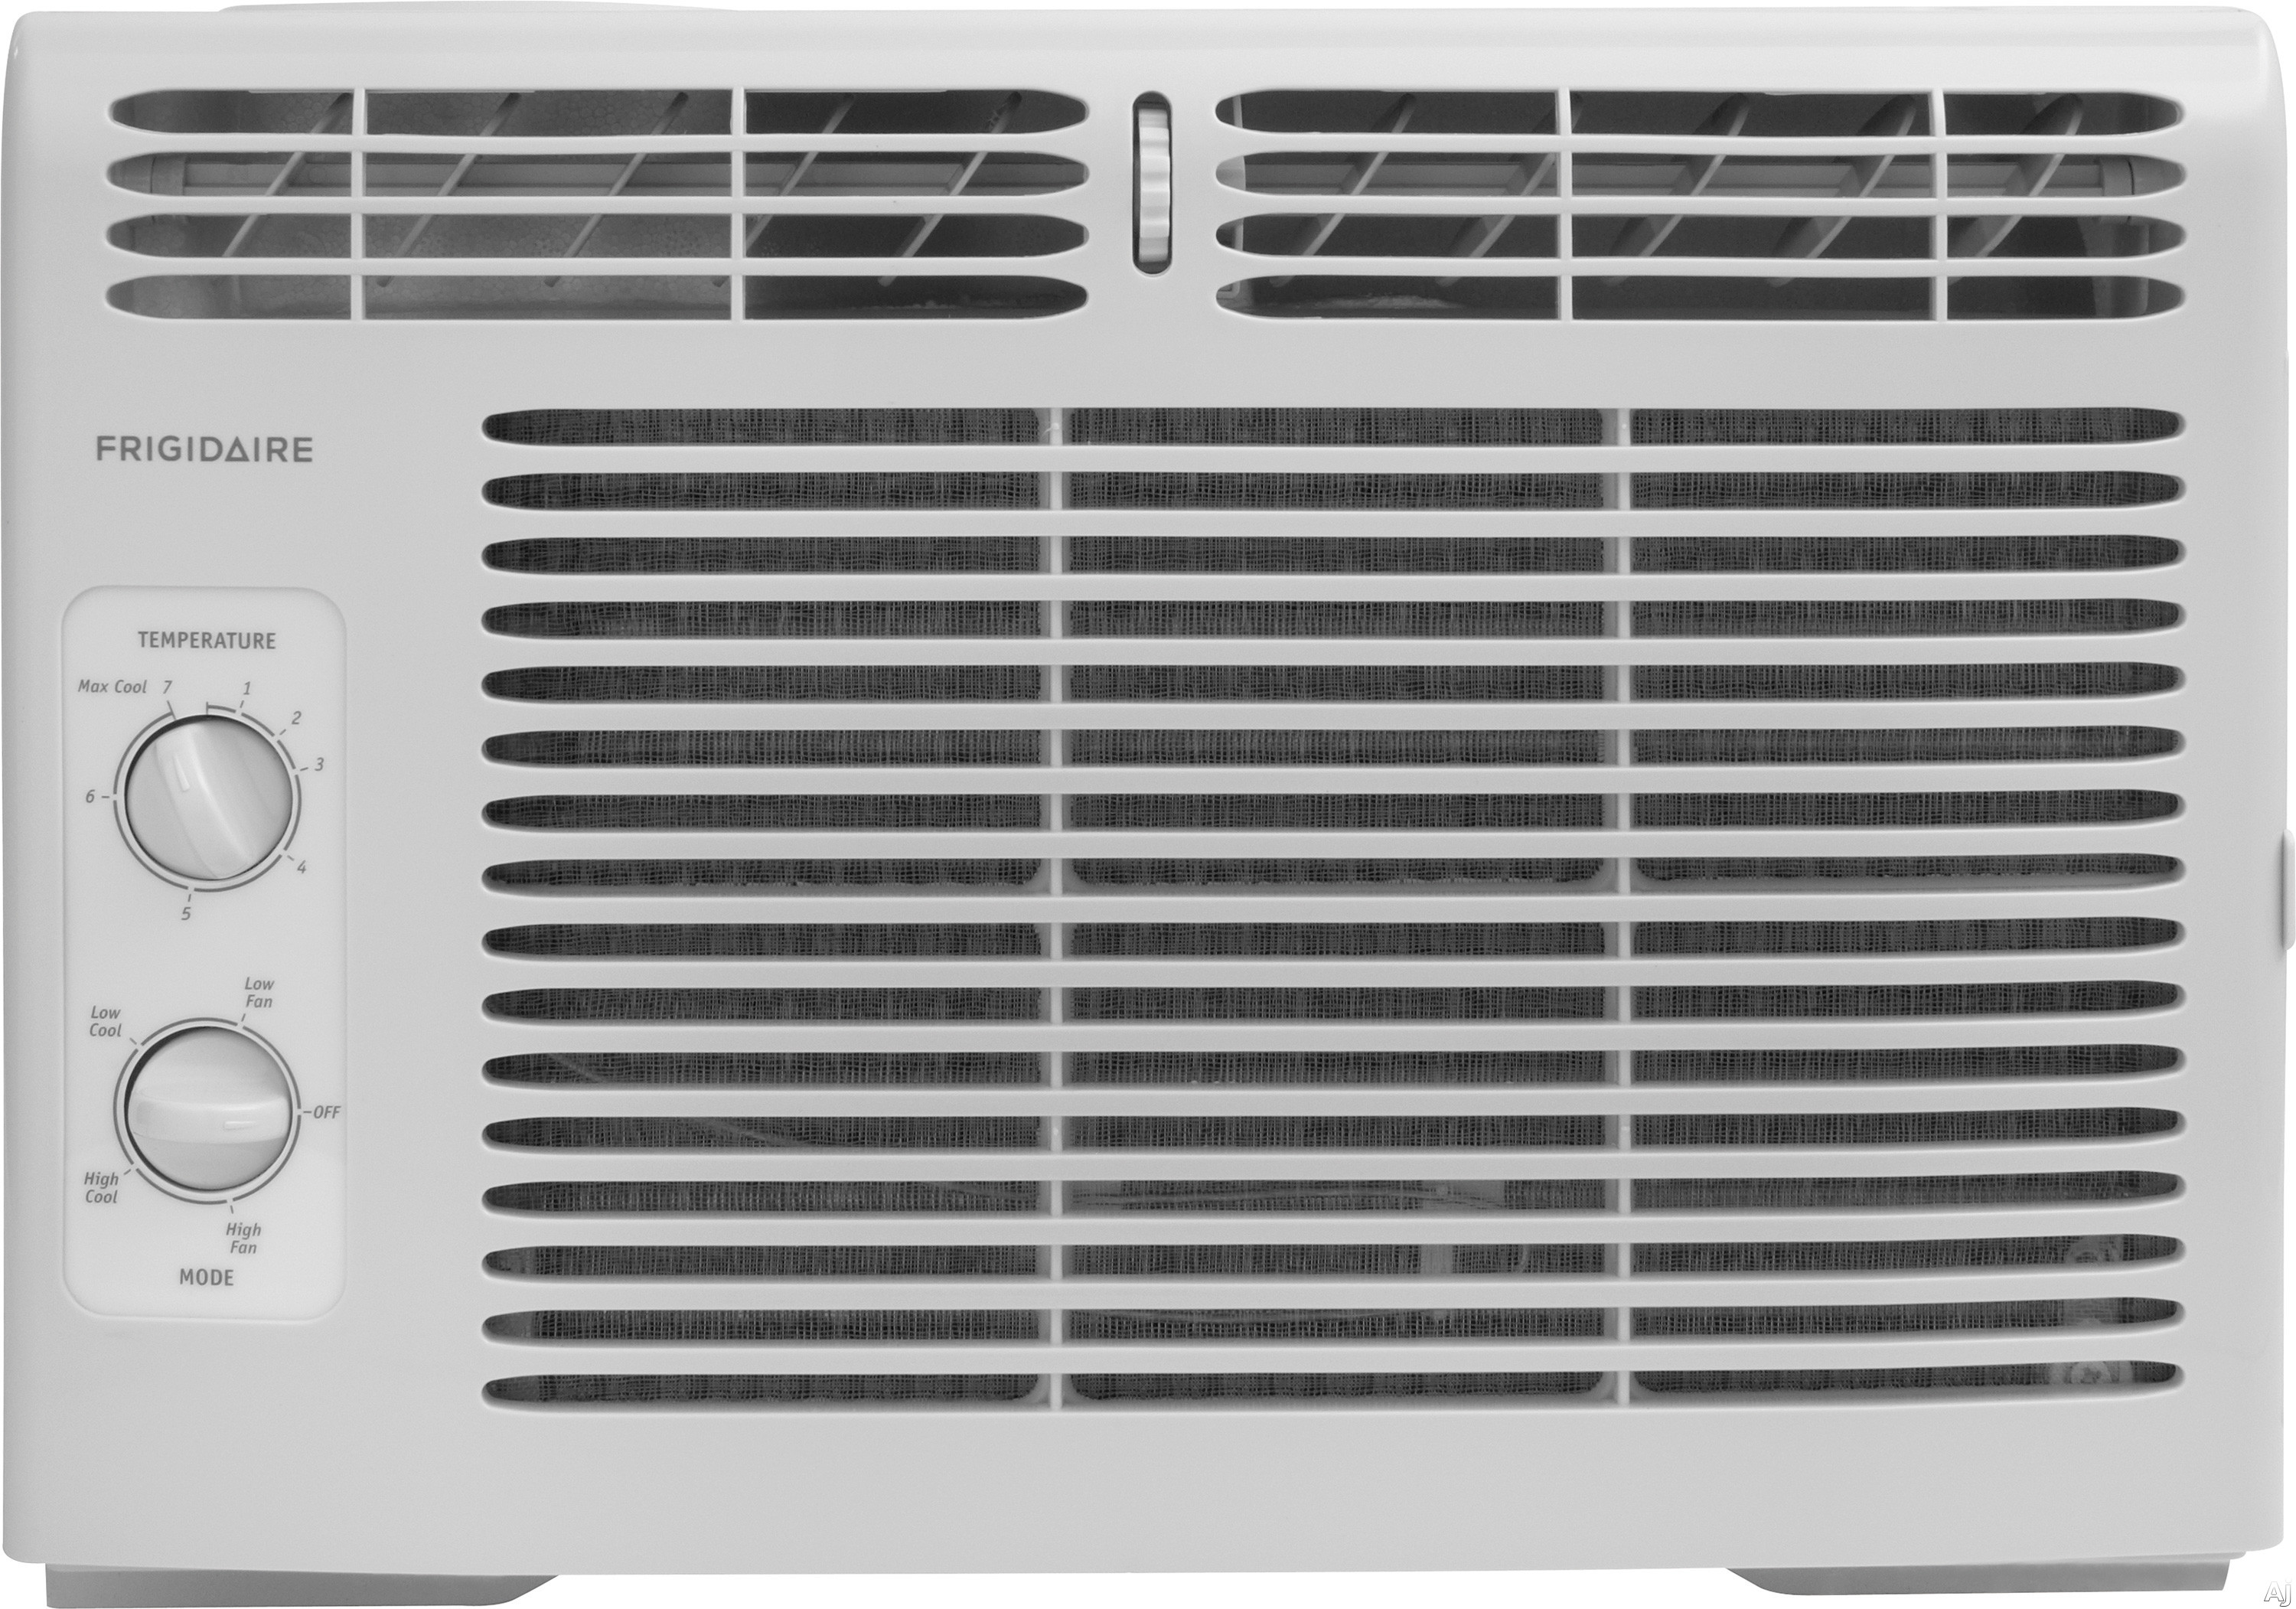 Frigidaire FFRA0511R1 5,000 BTU Window Air Conditioner with 11.1 EER, R-410A Refrigerant, 1.1 Pts/Hr Dehumidification, 150 sq. ft. Cooling Area, 2 Fan Speeds and Mechanical Controls FFRA0511R1